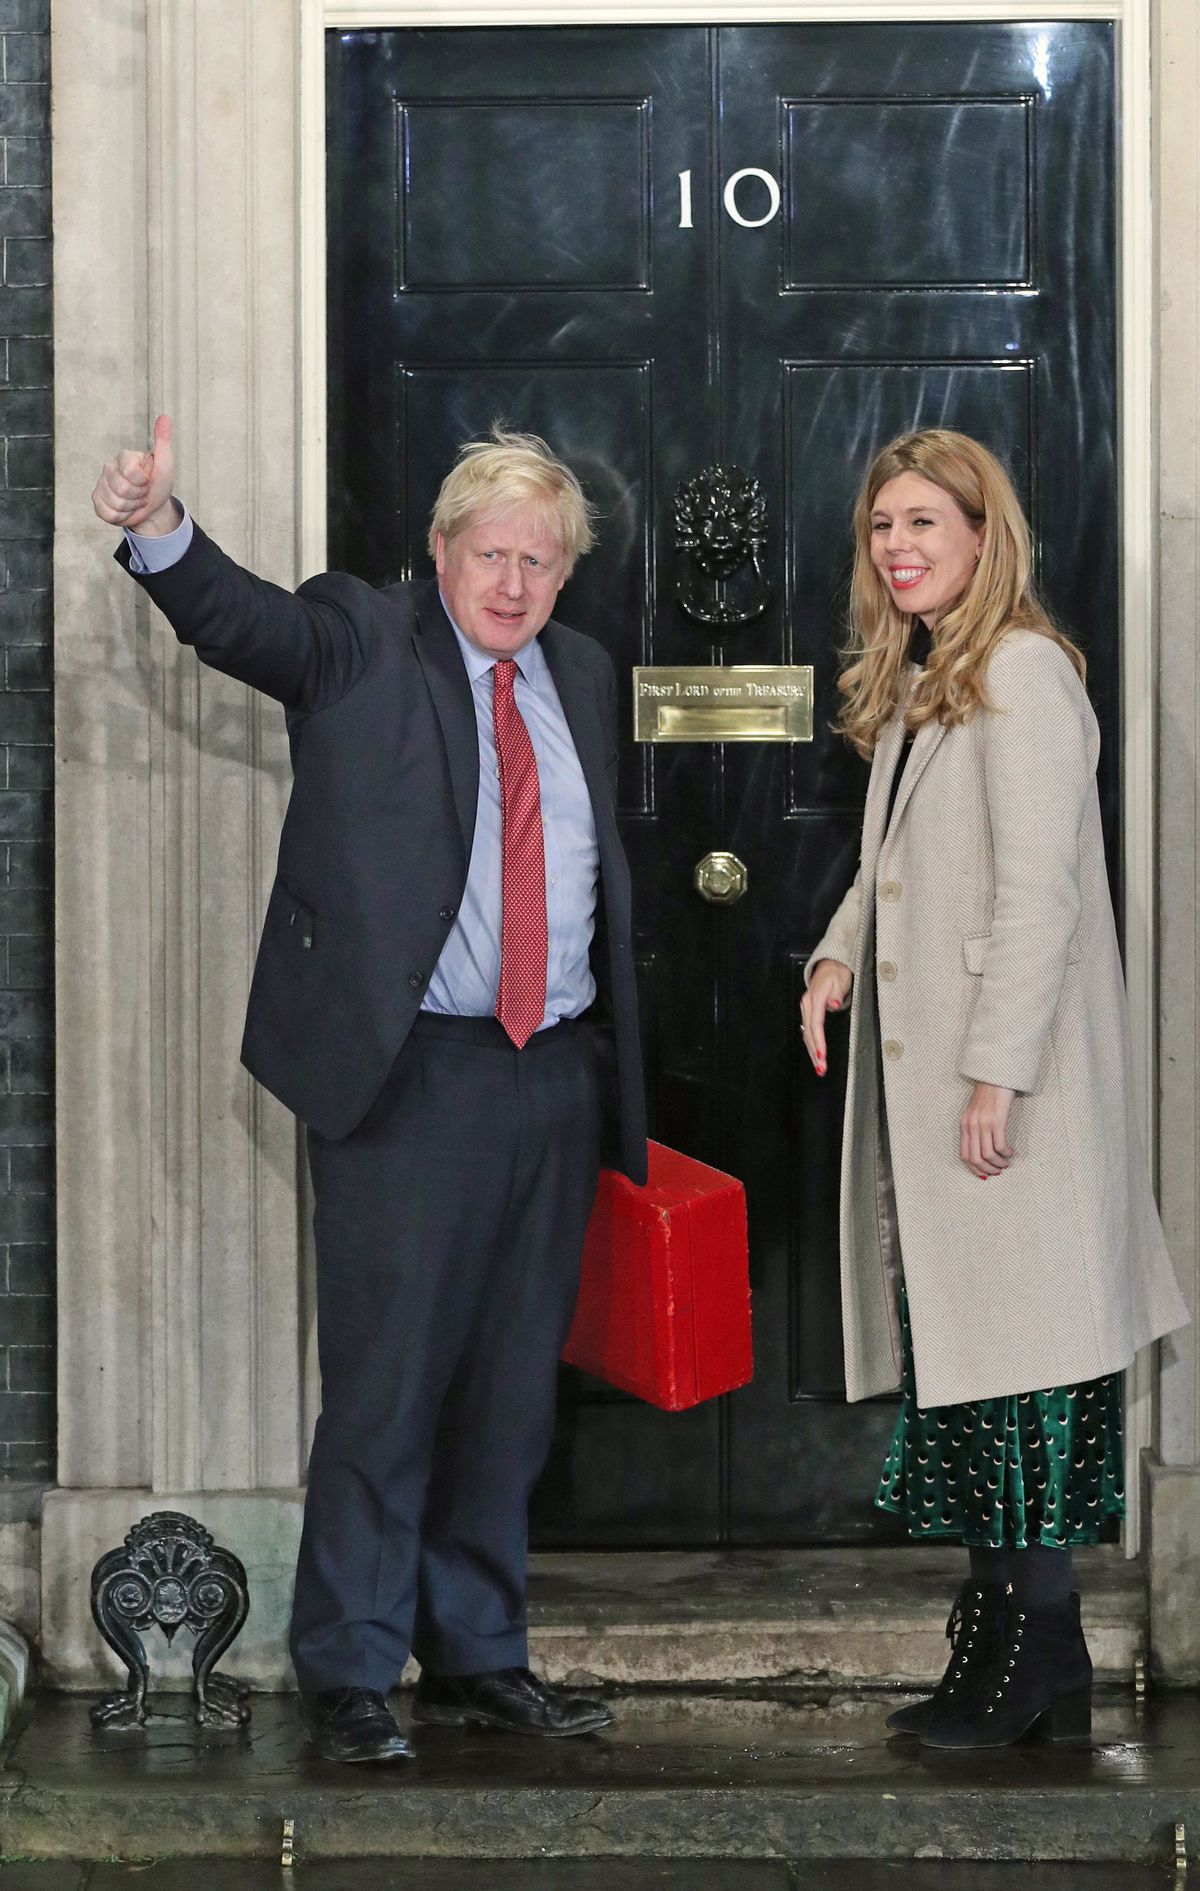 Prime Minister Boris Johnson and his girlfriend Carrie Symonds arrive in Downing Street after the Conservative Party was returned to power in the General Election with an increased majority. PA Photo. Picture date: Friday December 13, 2019. See PA story POLITICS Election. Photo credit should read: Yui Mok/PA Wire